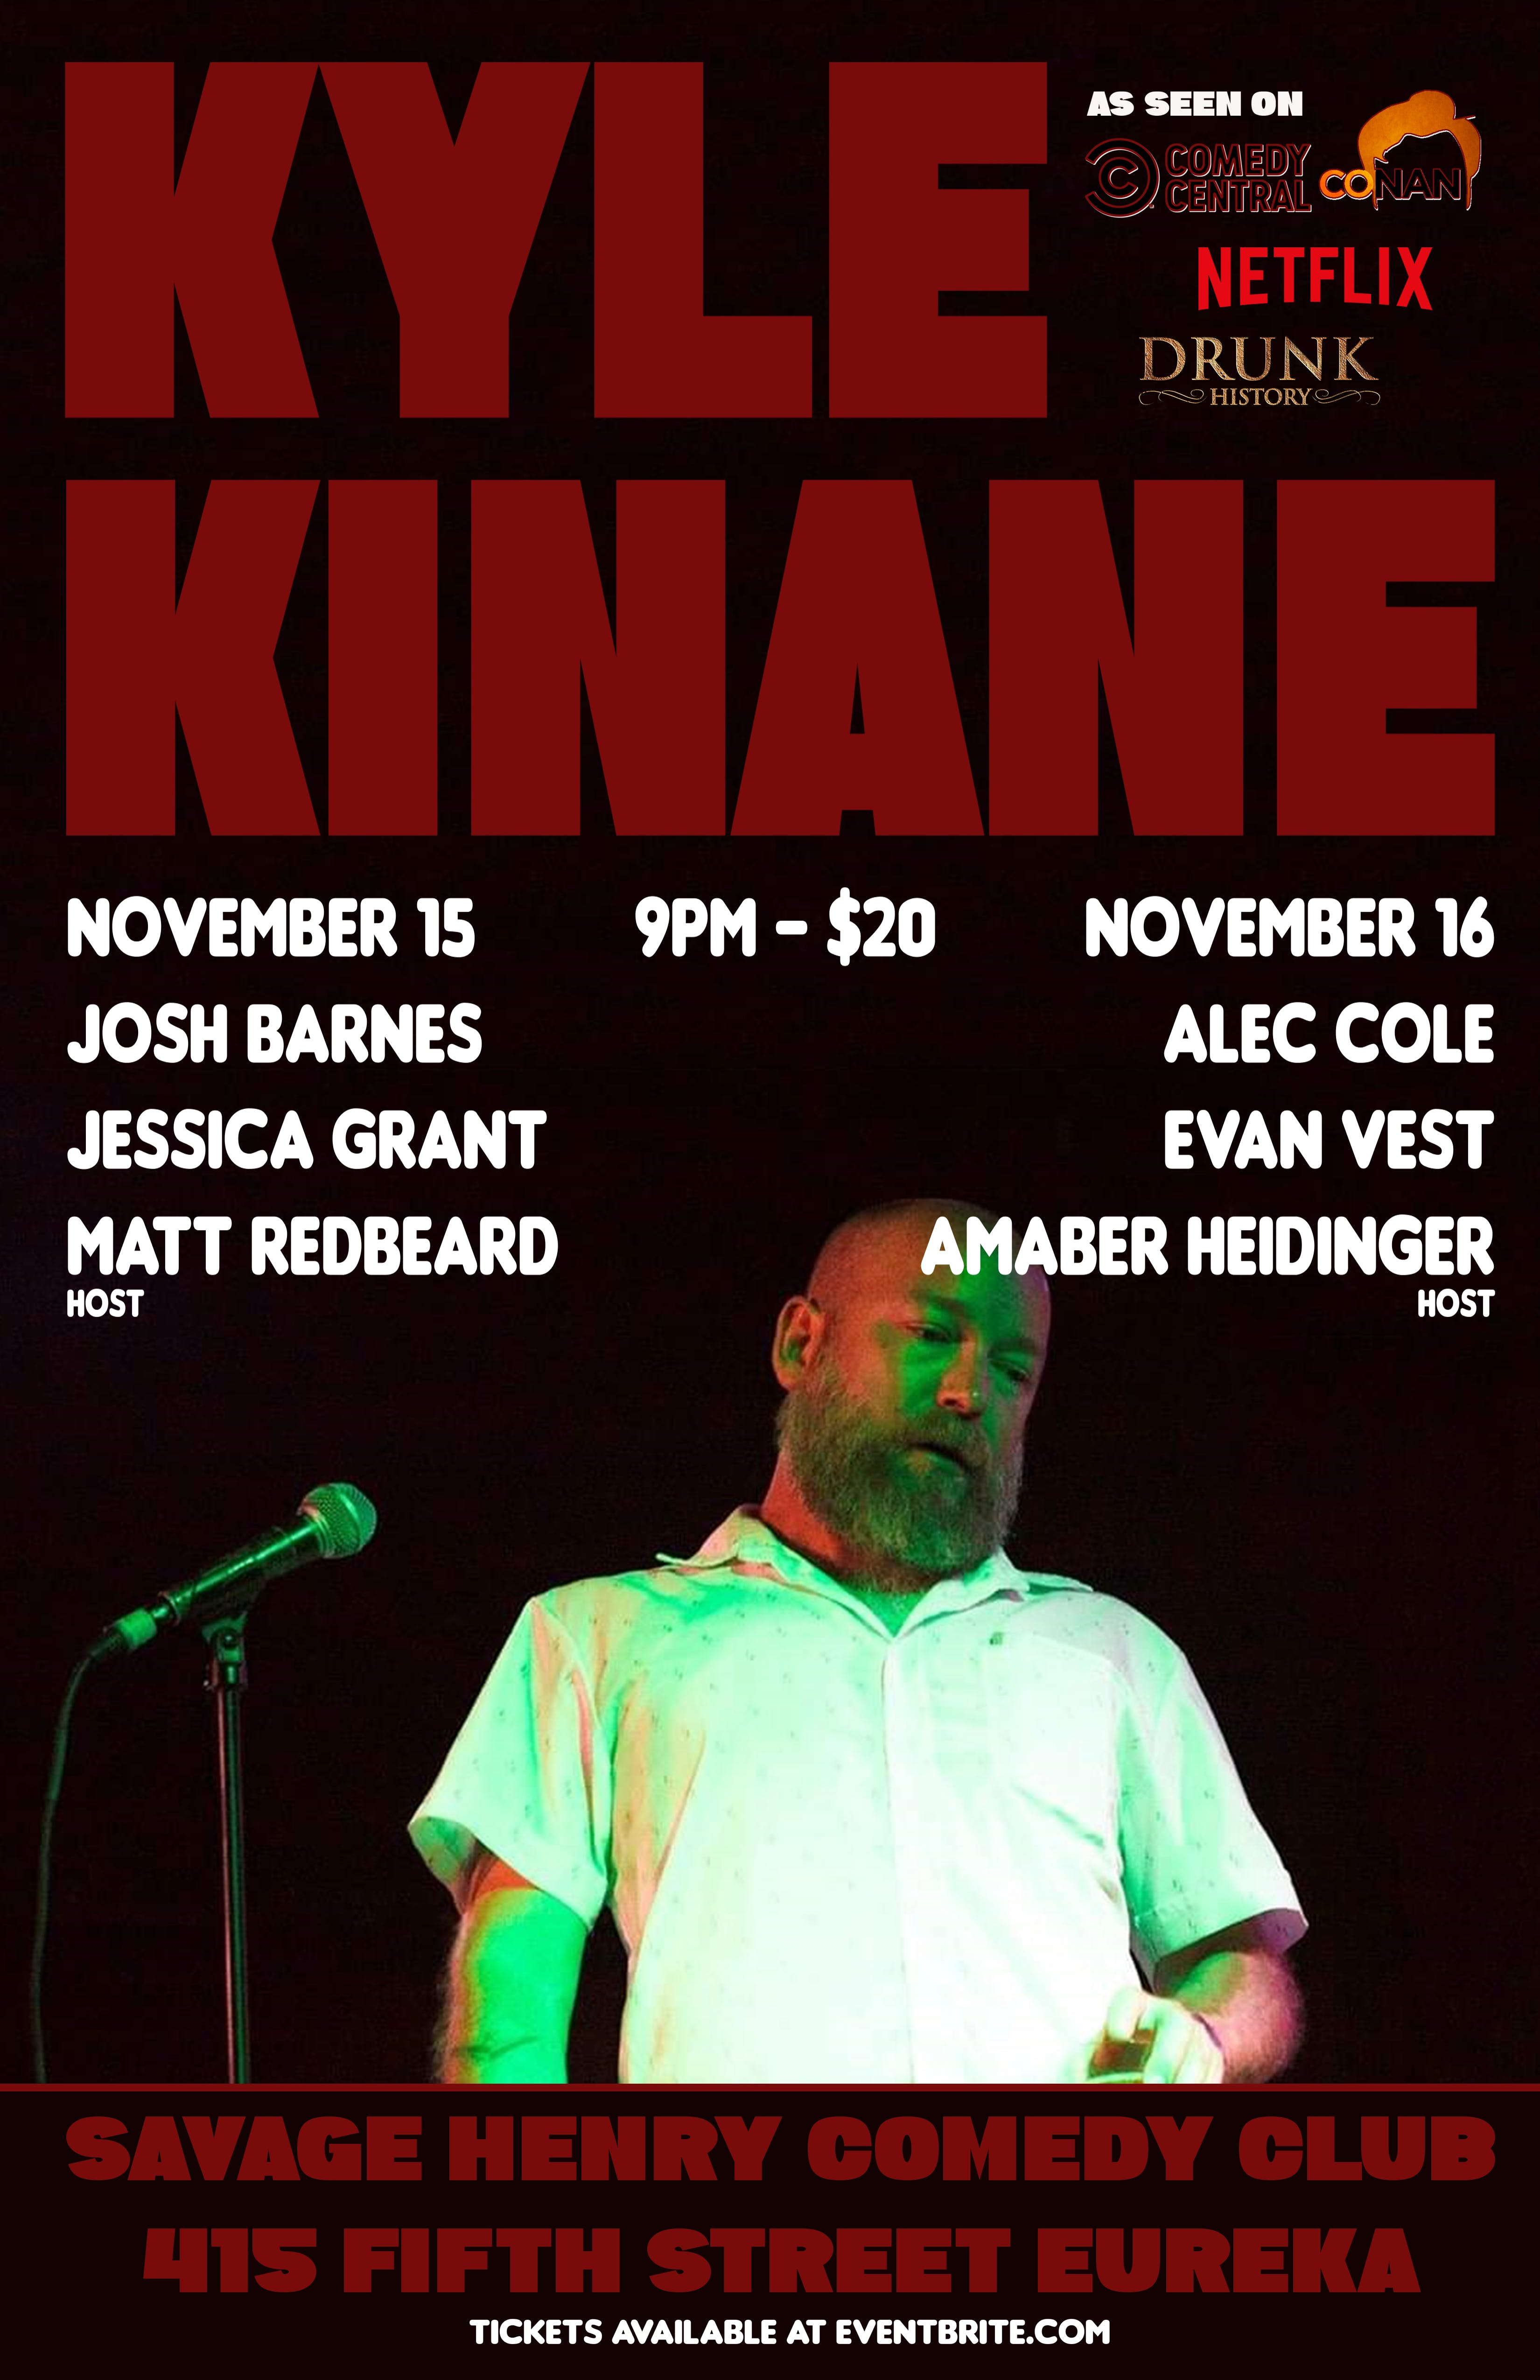 Kyle Kinane does a weekend at The Club